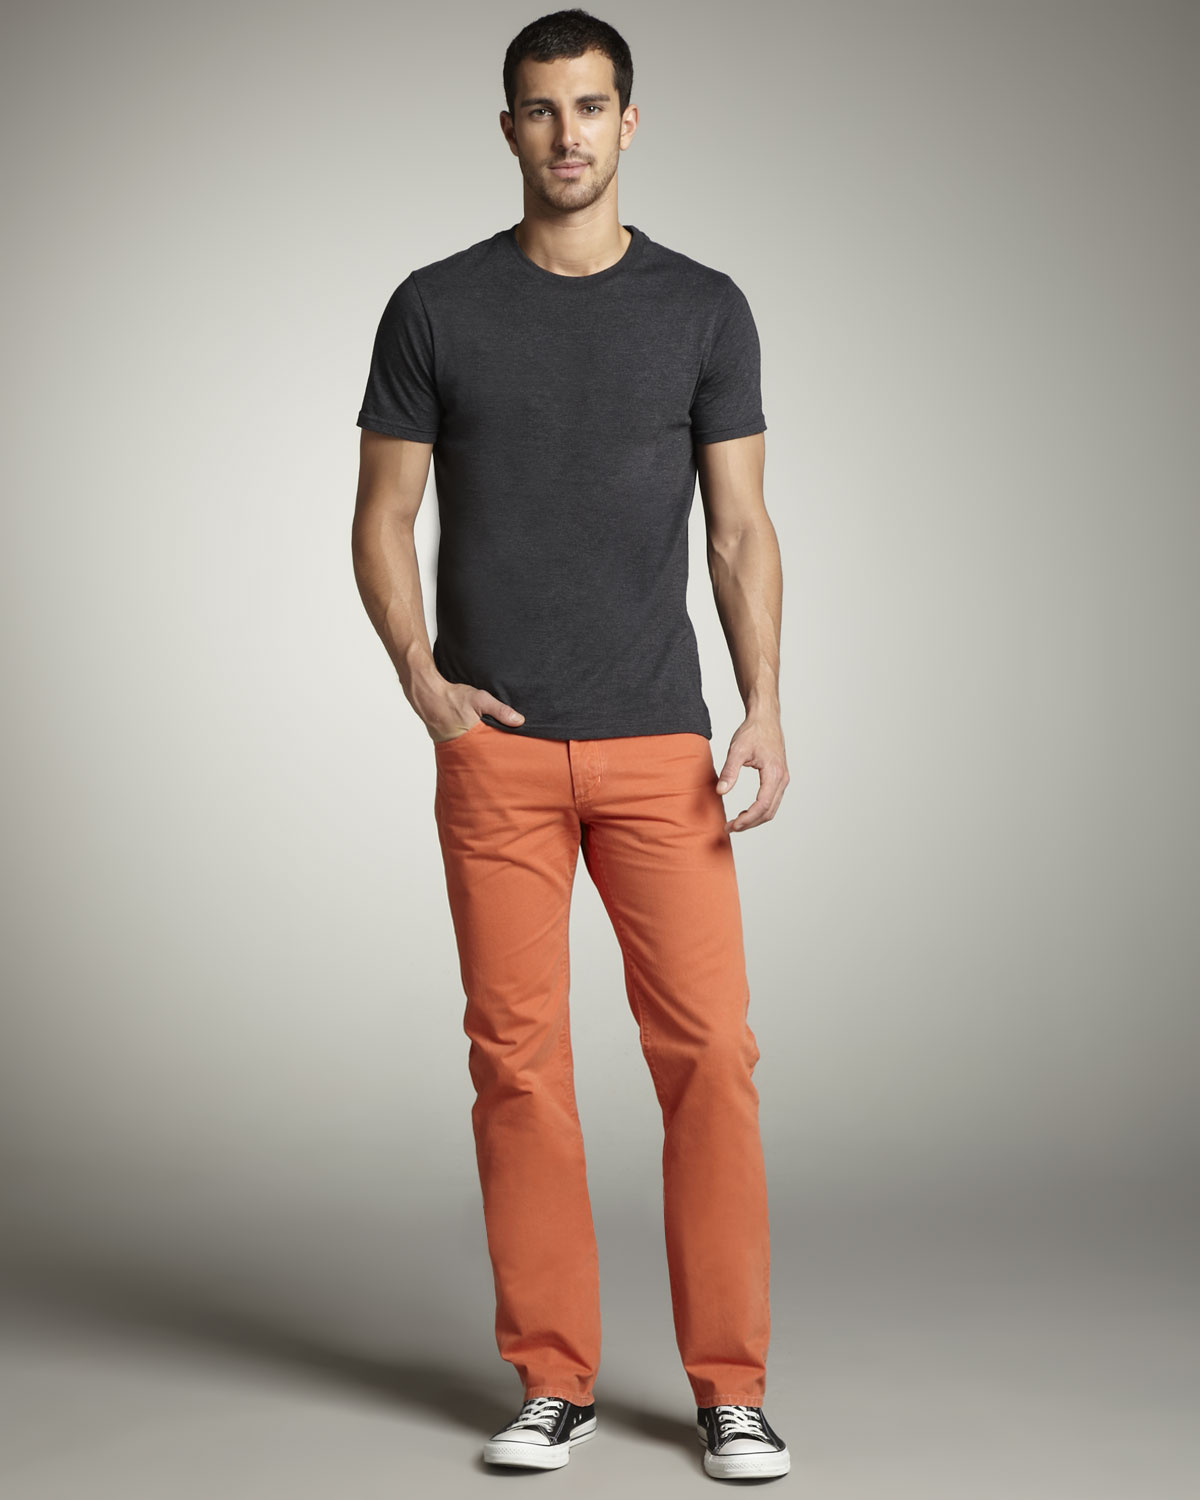 Orange pants have been in vogue and can be seen being sported by both men and women. Men's Outfits with Orange Pants. The phrase orange is the new black has been trending for quite some years now and it has definitely left its influence on the fashion world too.